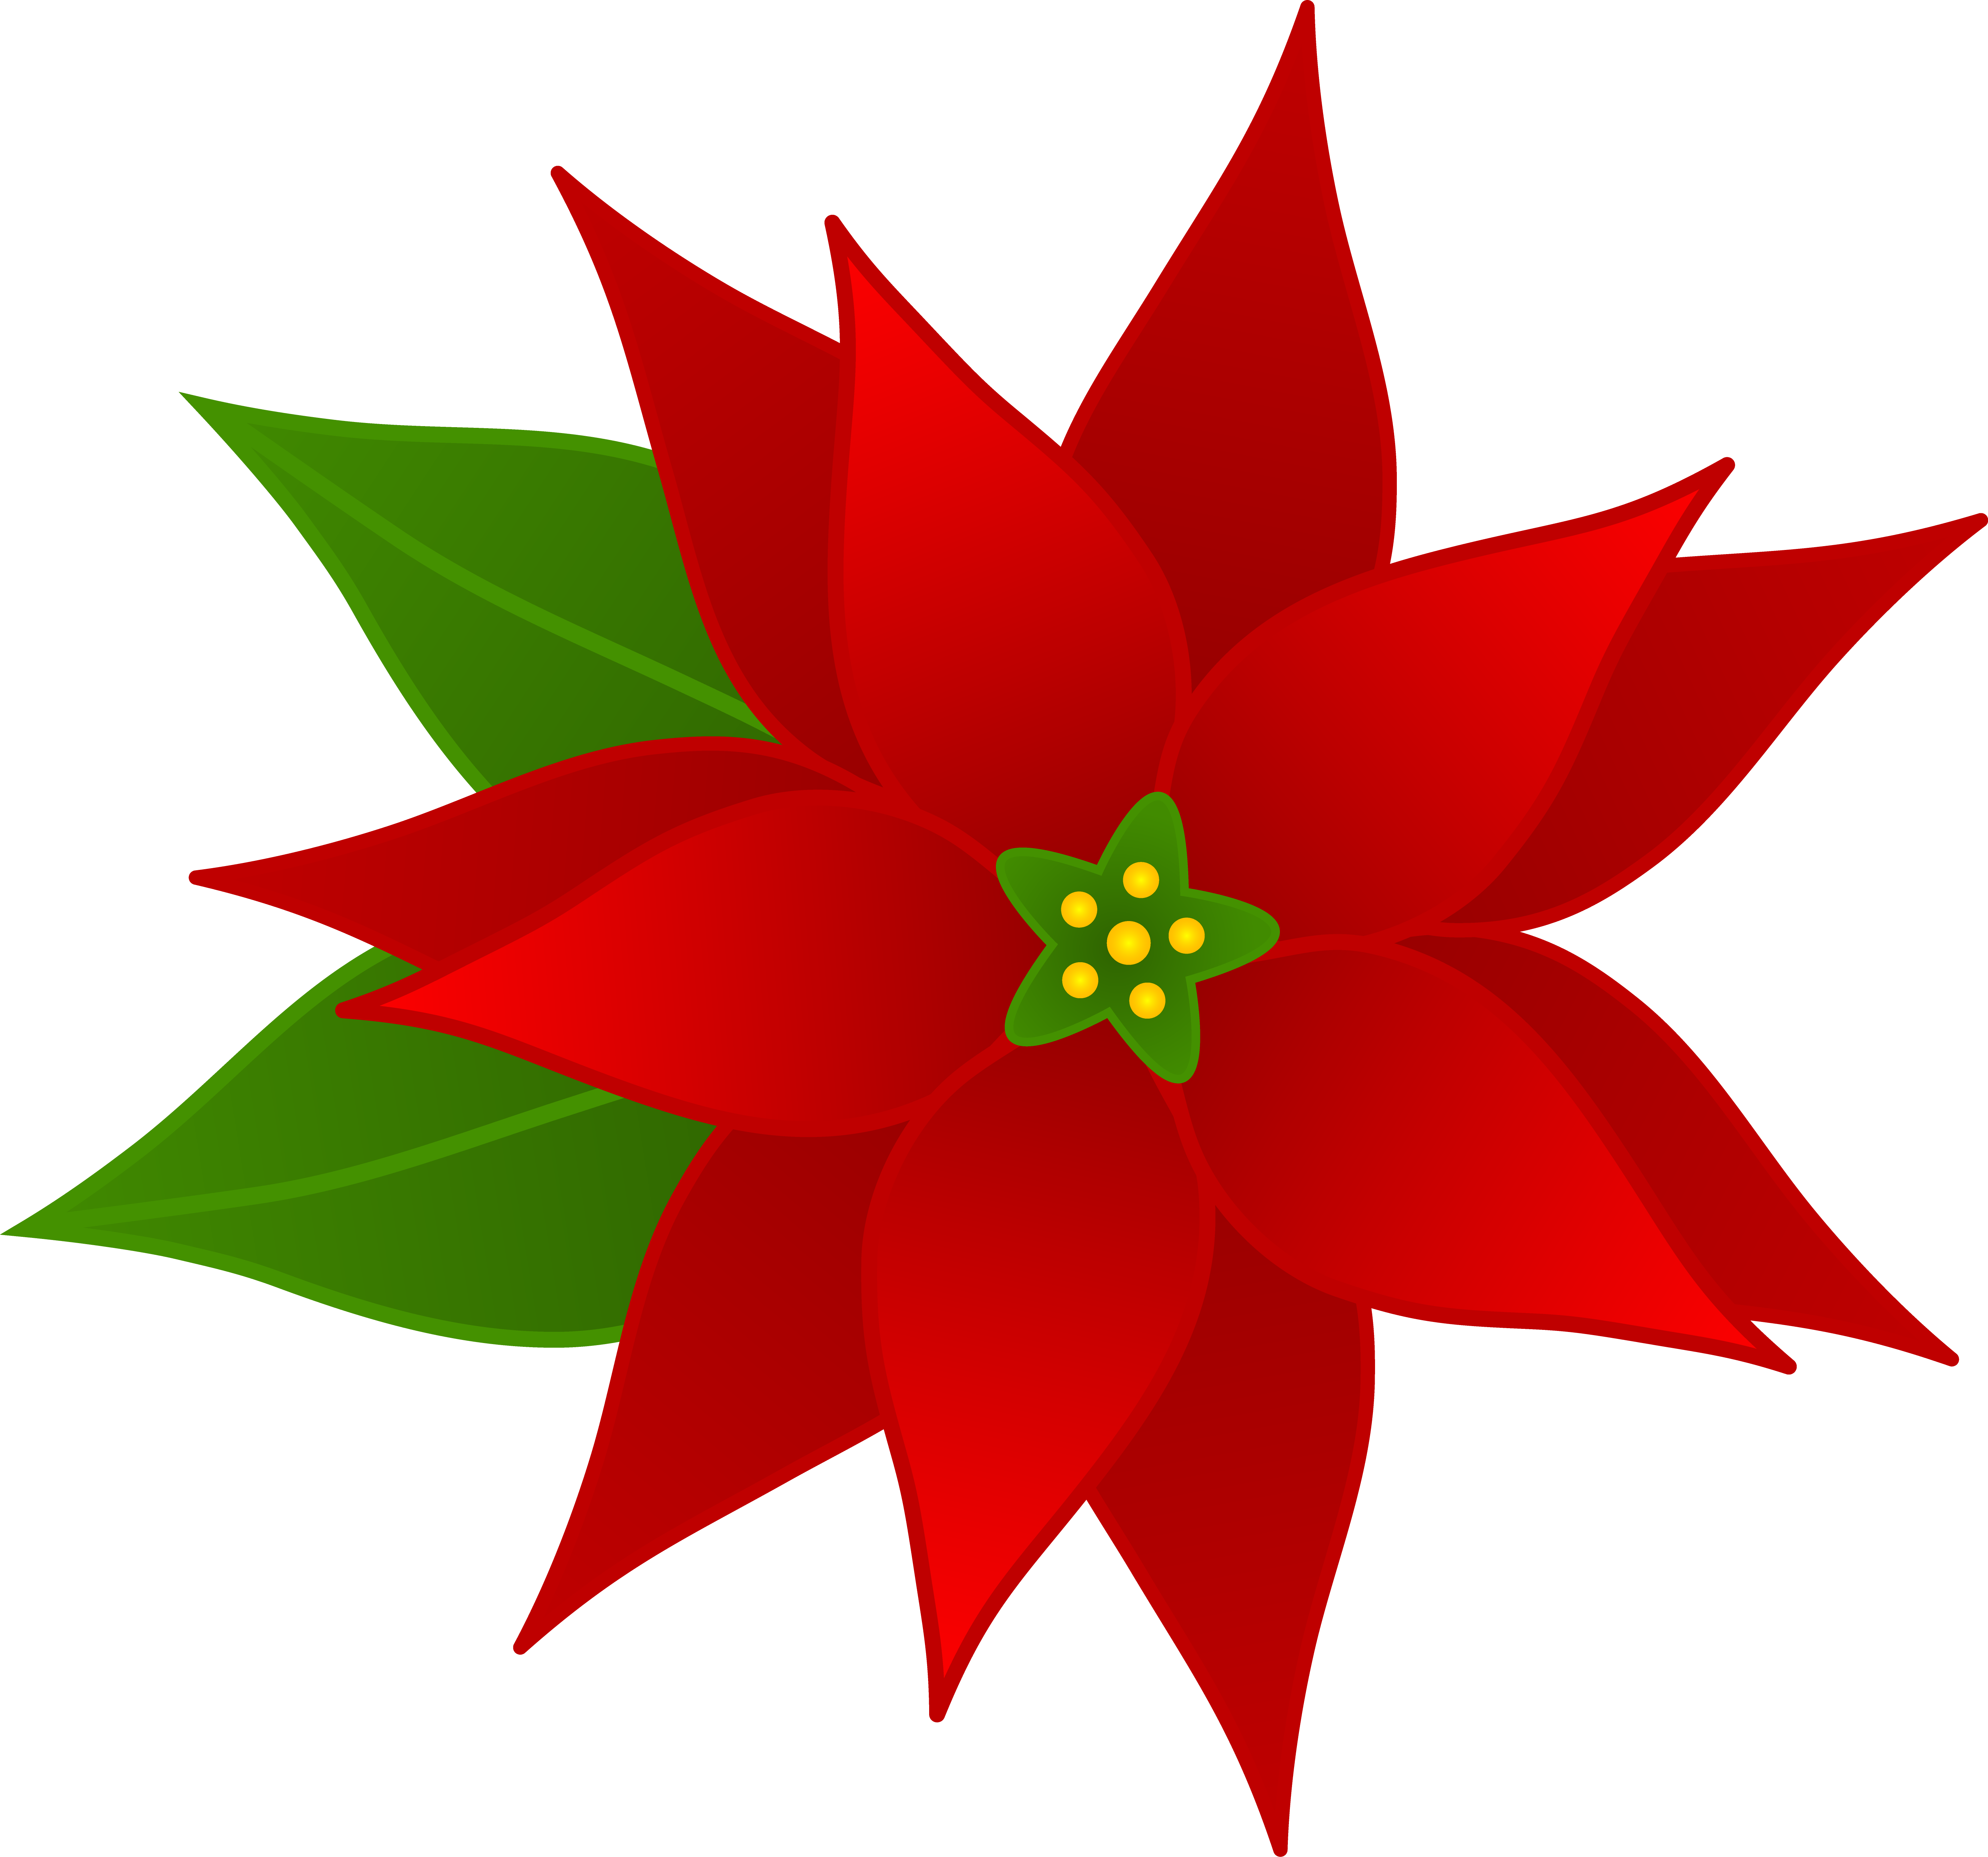 Poinsettia plant clipart clipart black and white download Free Poinsettias Cliparts, Download Free Clip Art, Free Clip ... clipart black and white download